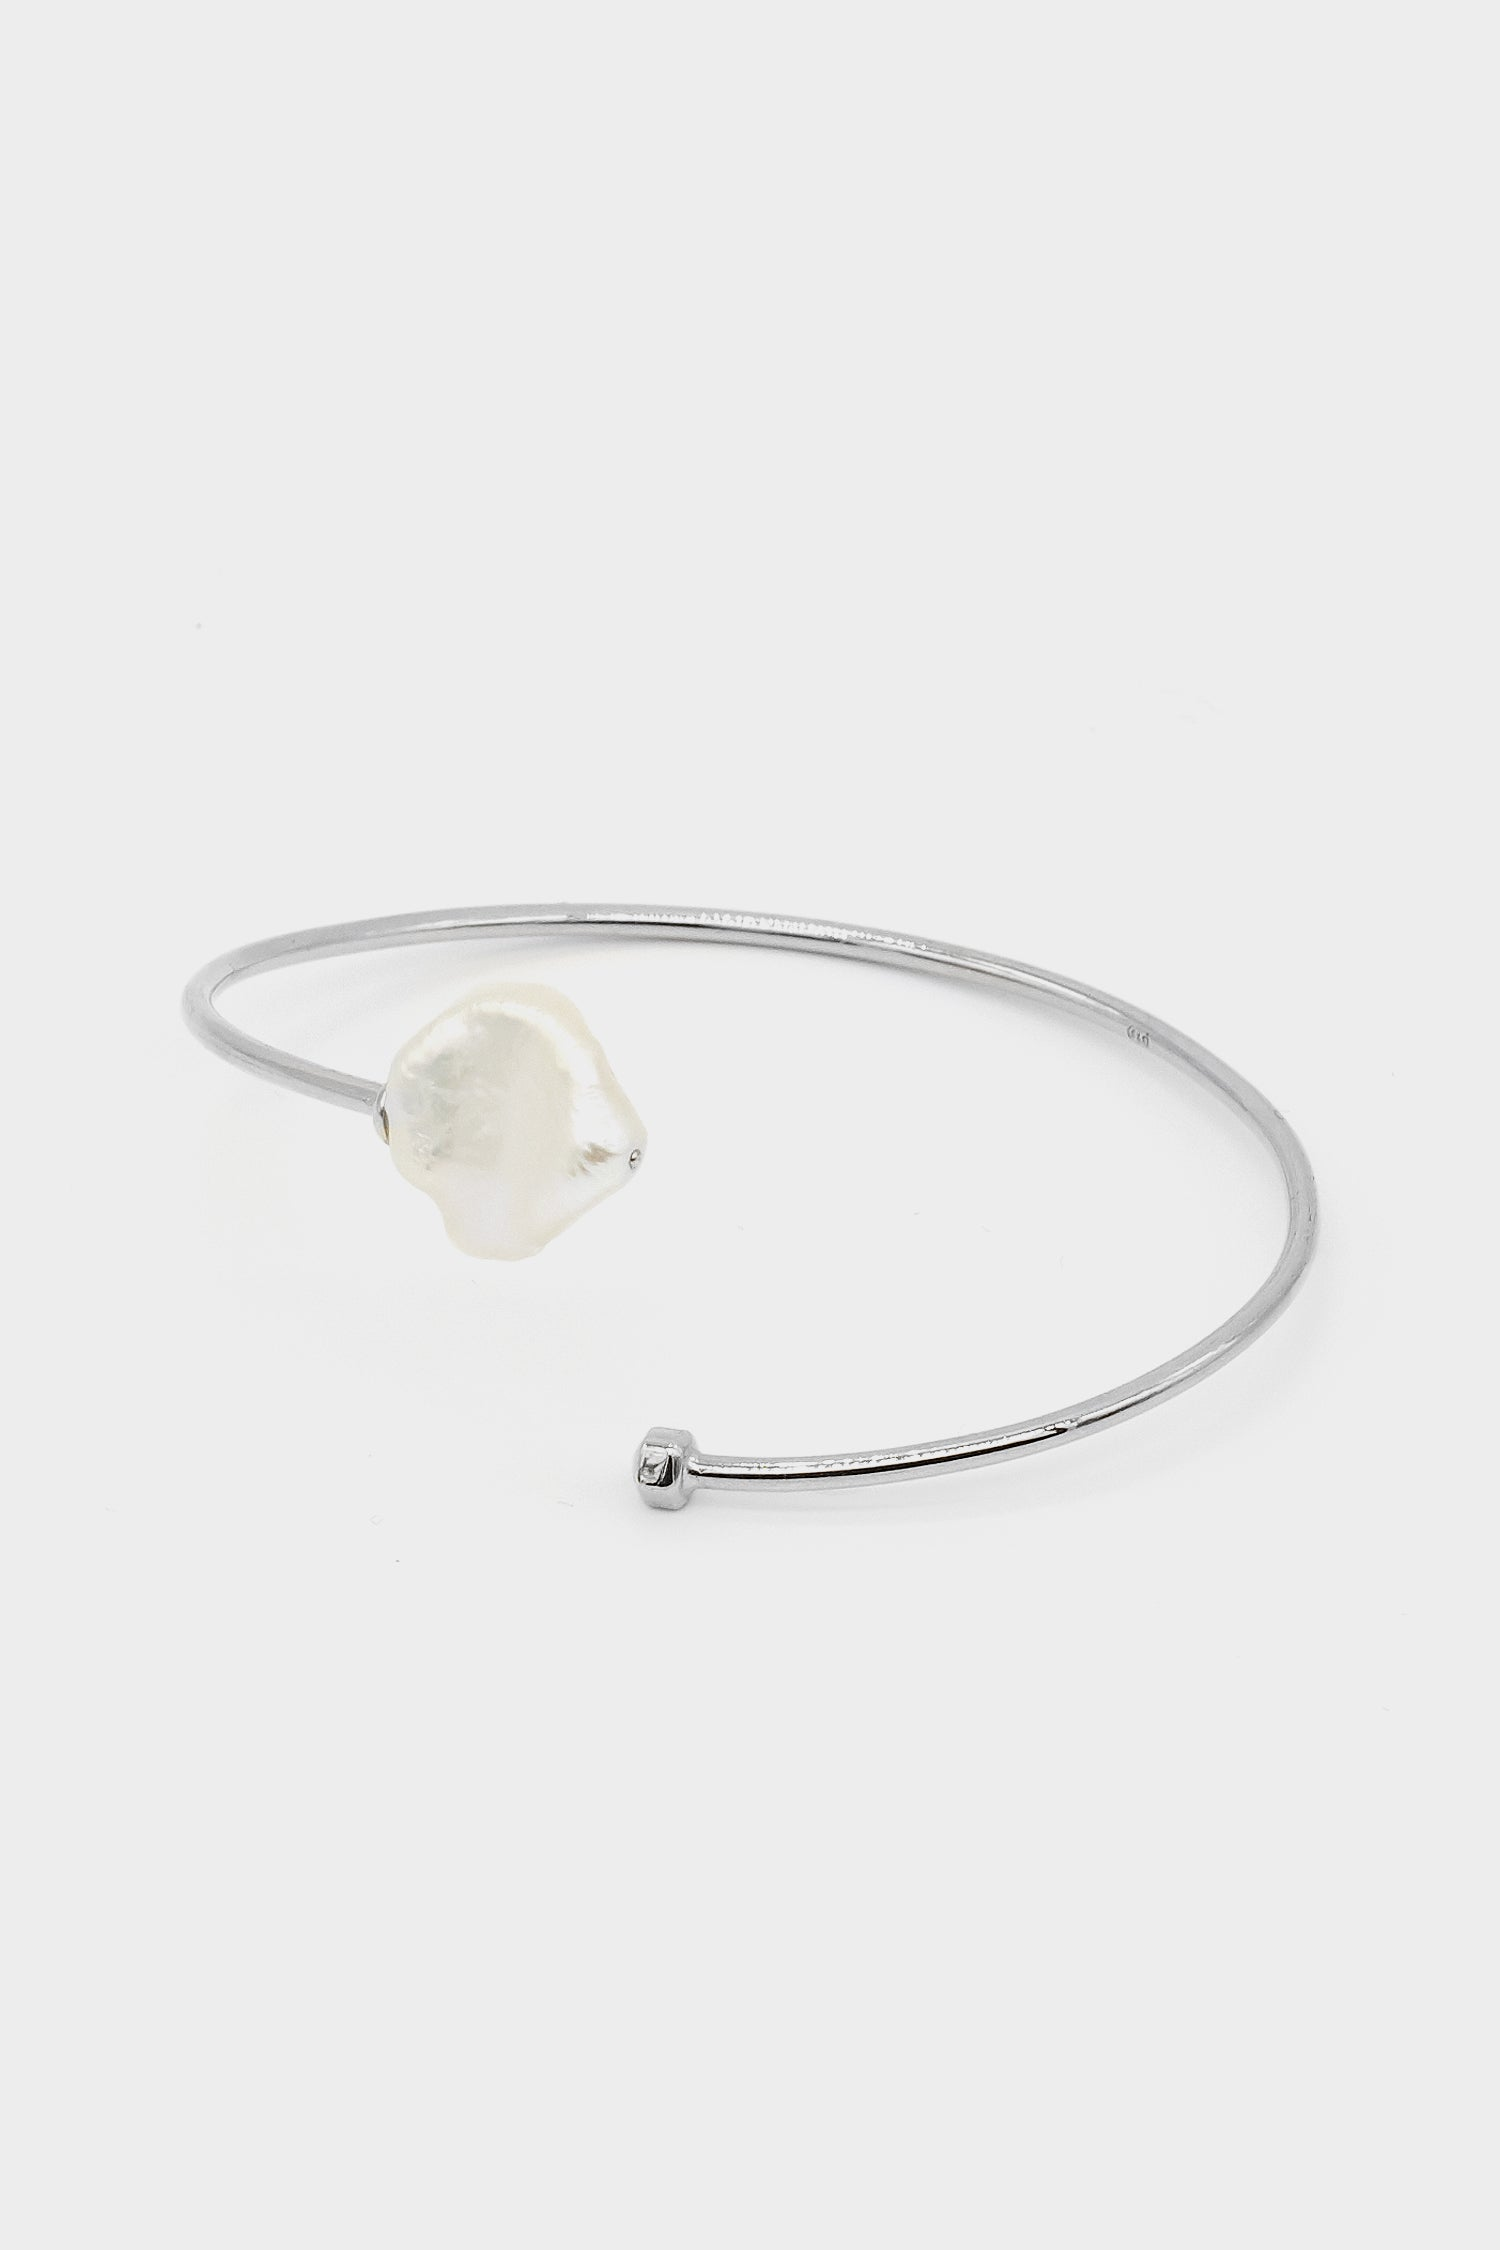 Keshi Pearl Bangle | Silver